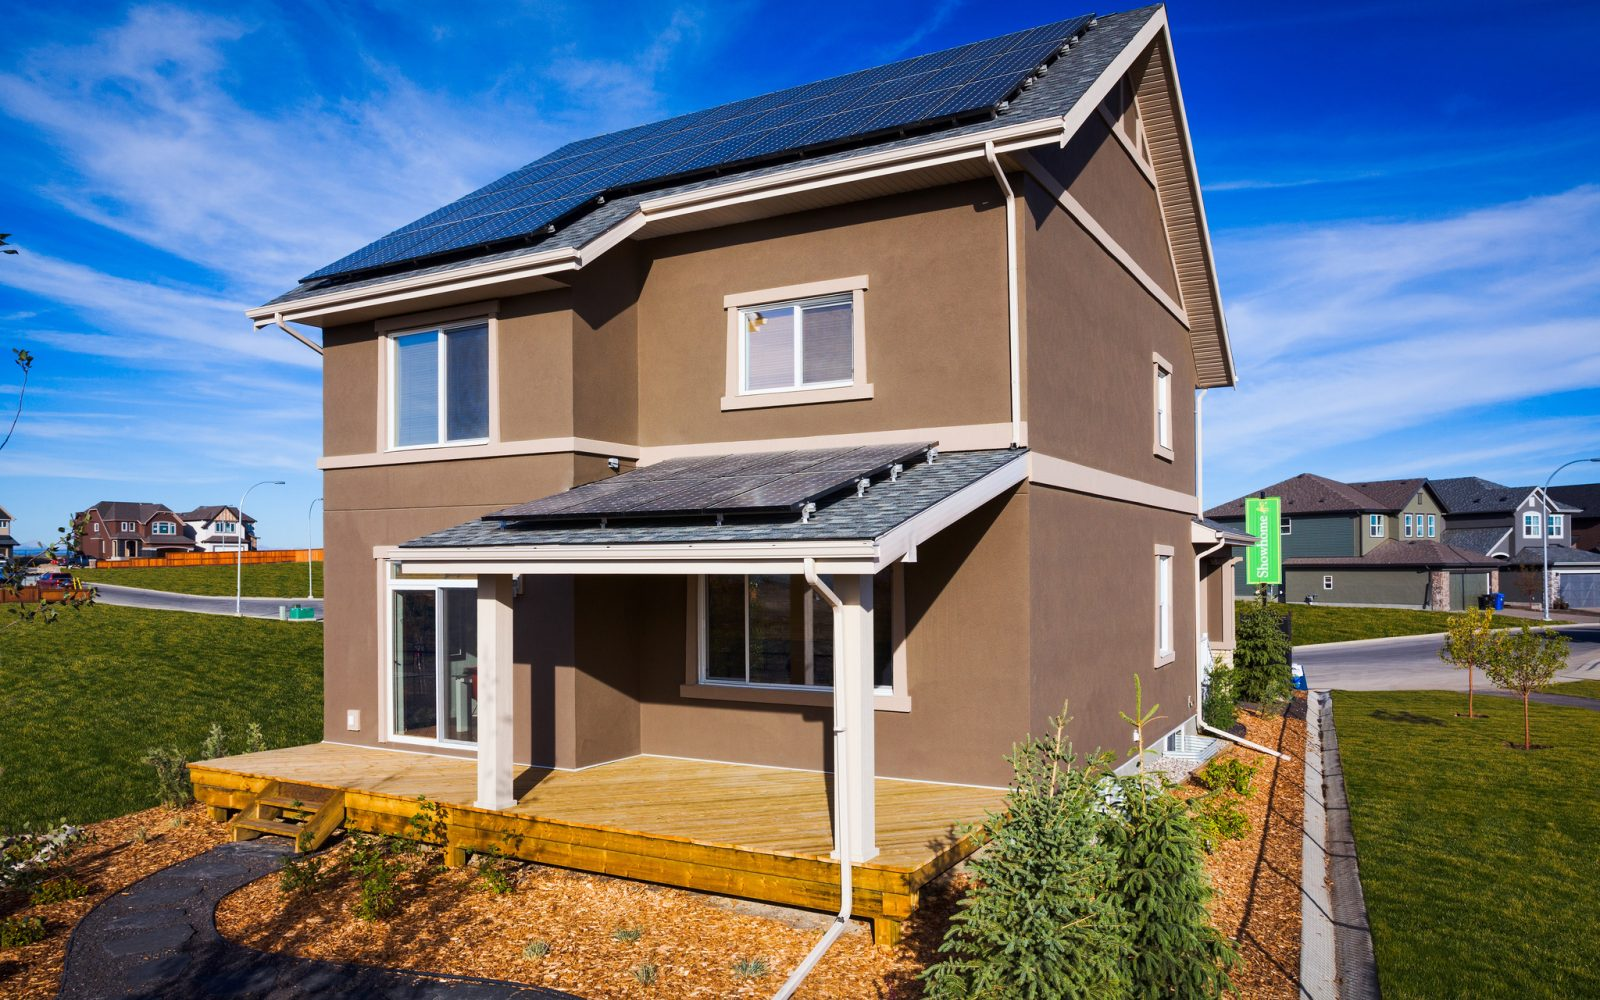 Government drops plan to make Starter Homes exempt from zero ... on off-grid home plans, heritage home plans, zero energy home plans, net zero home plans, sustainable home plans,